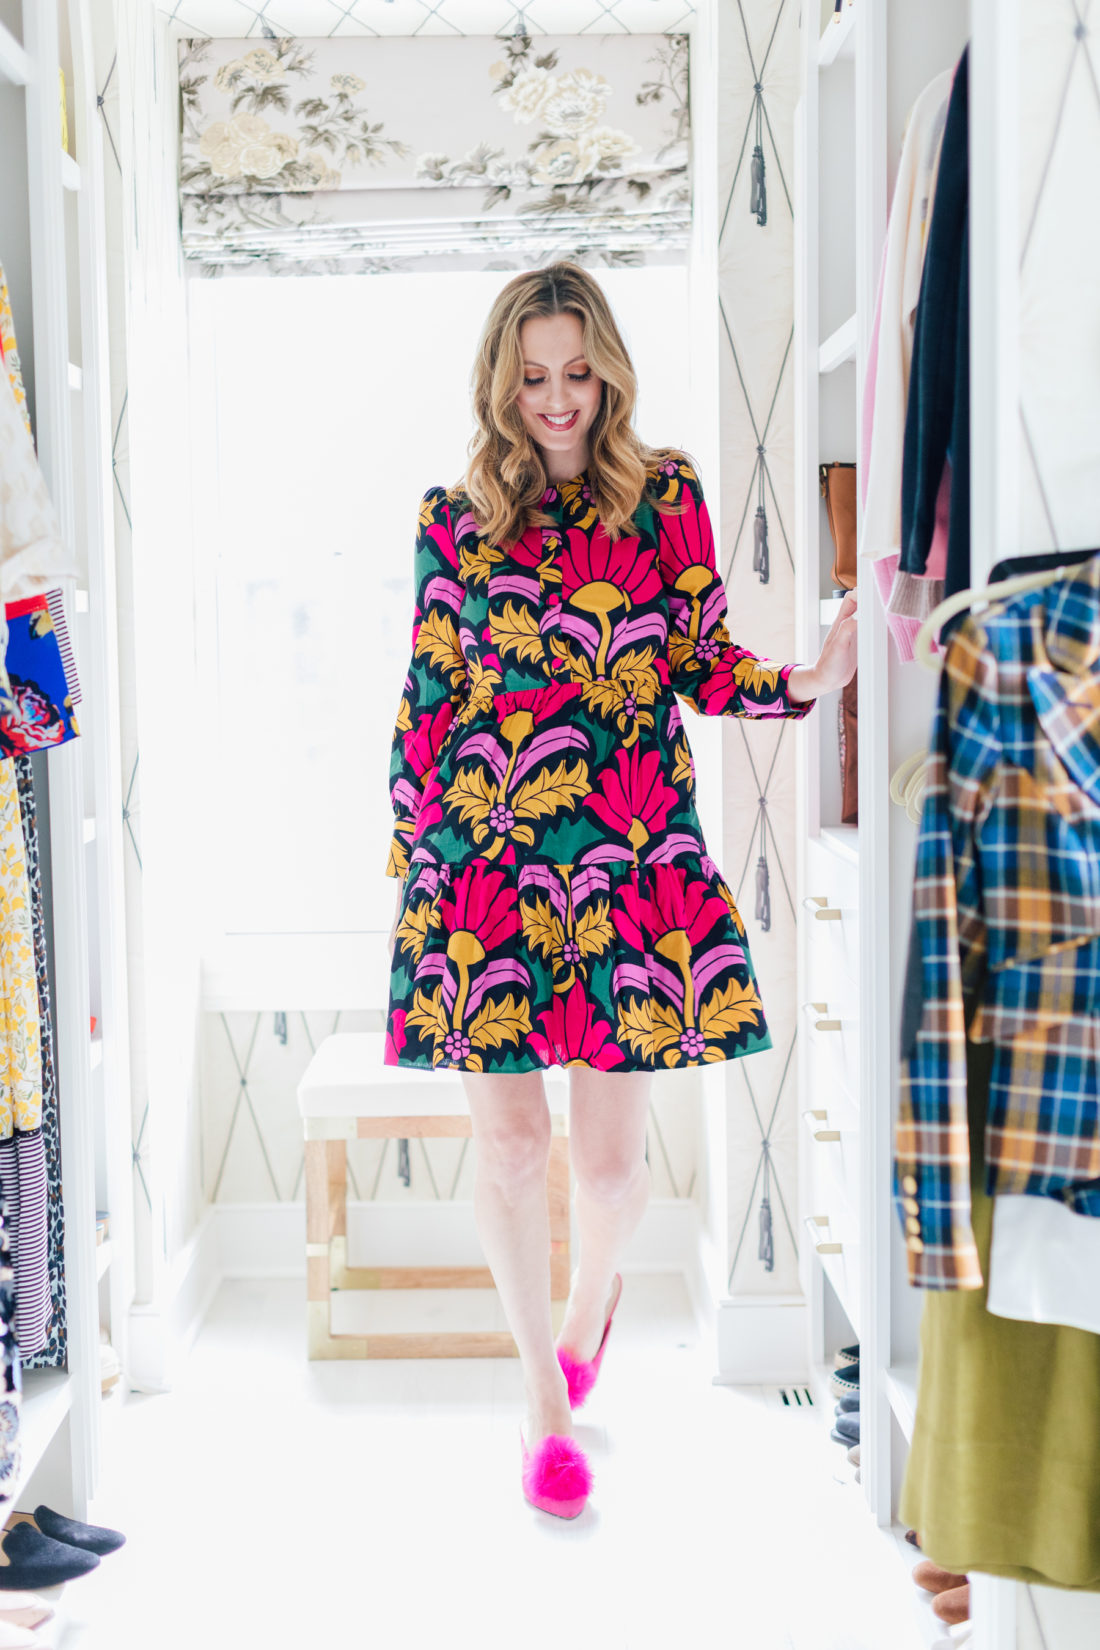 Eva Amurri Martino wears a colorful dress inside her walk-in closet